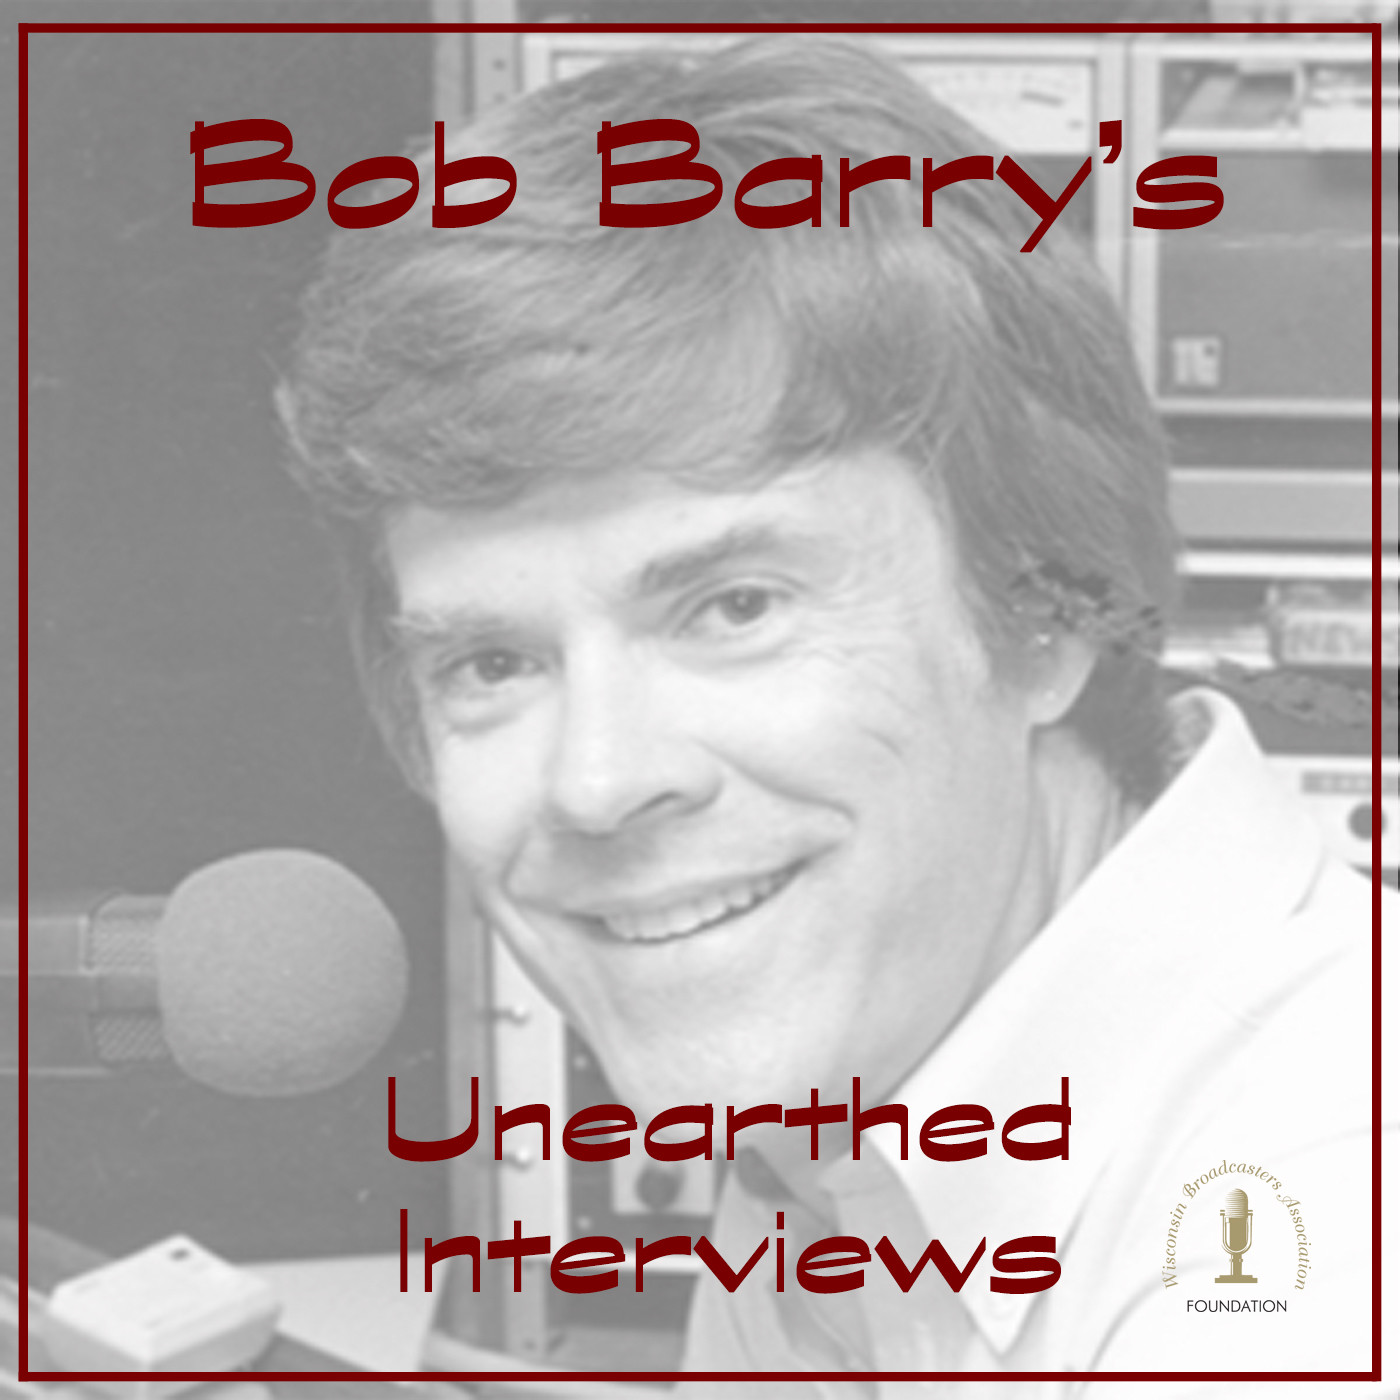 Bob Barry's Unearthed Interviews